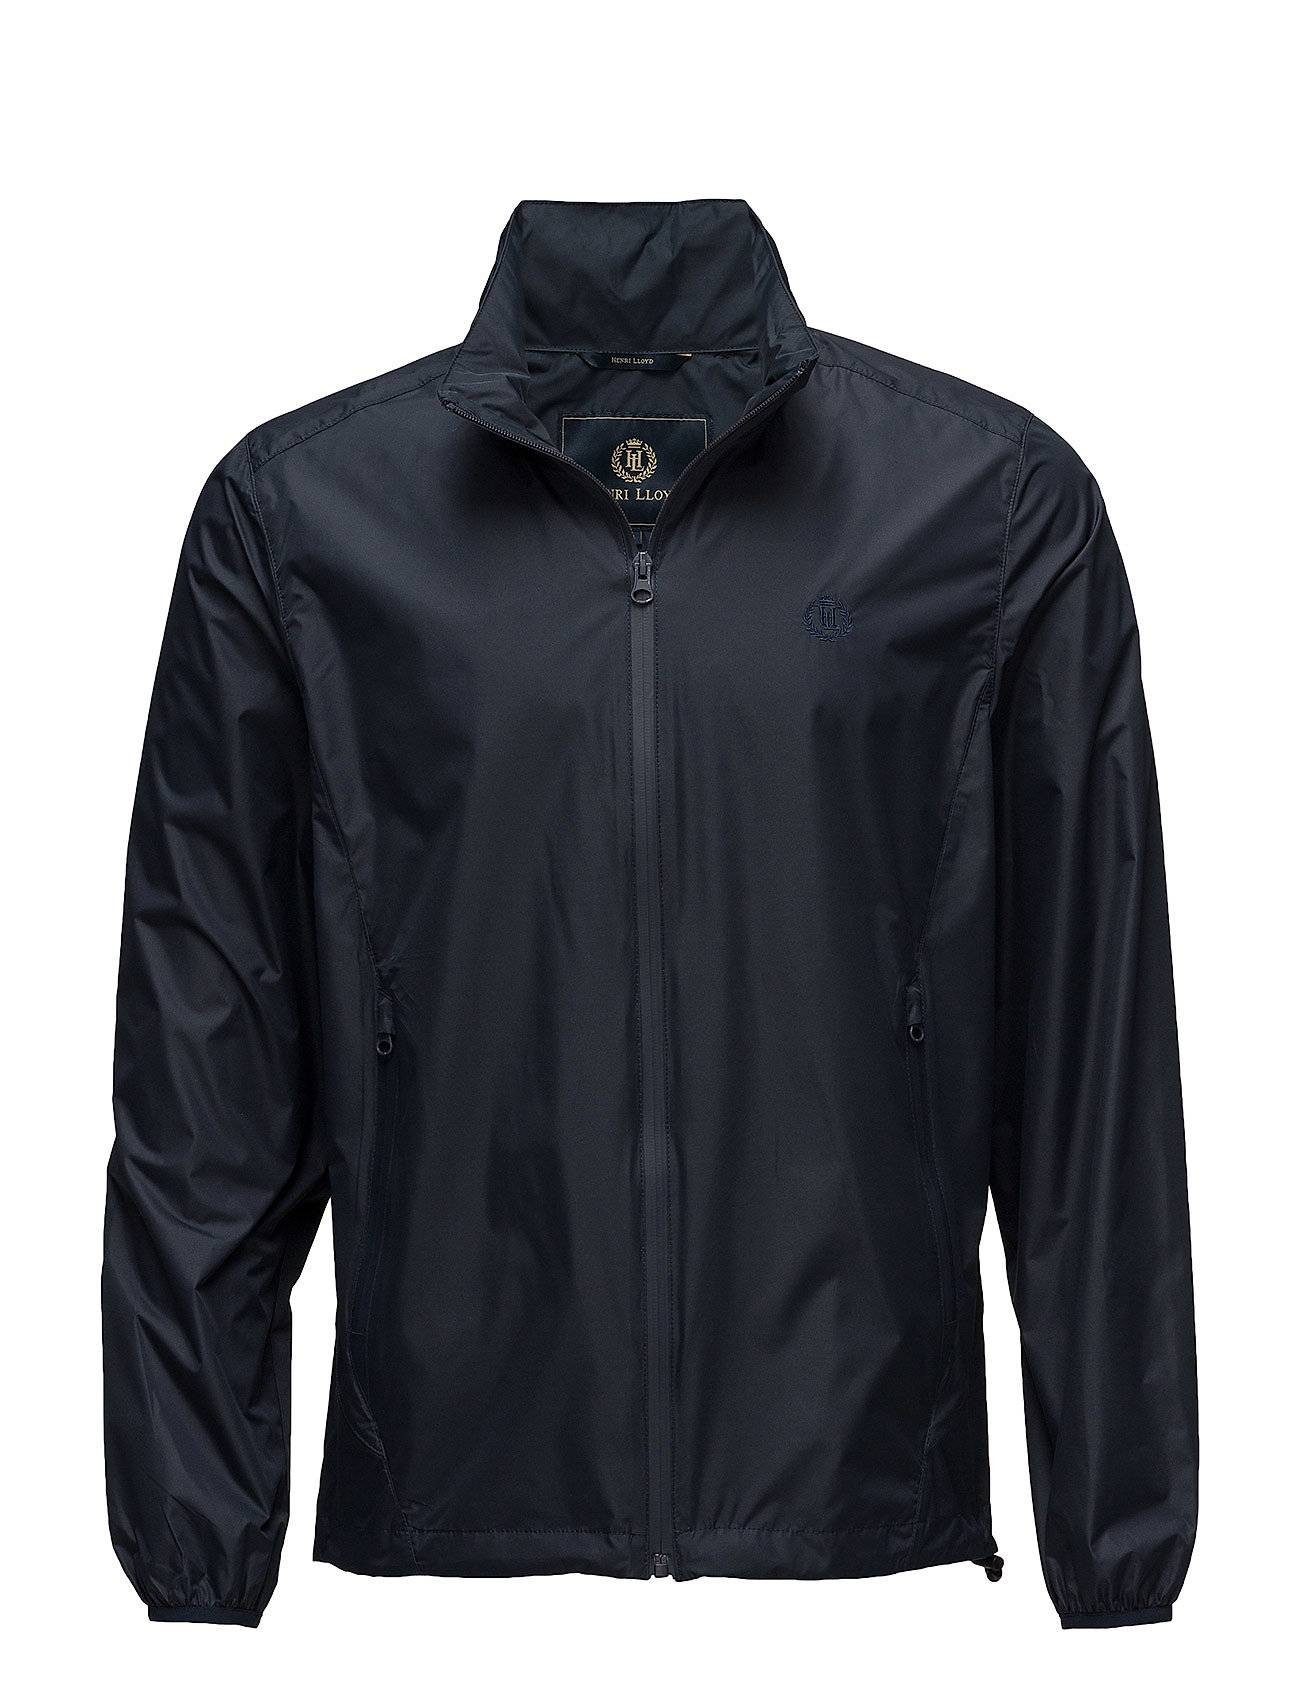 Henri Lloyd Elve Light Shell Jacket